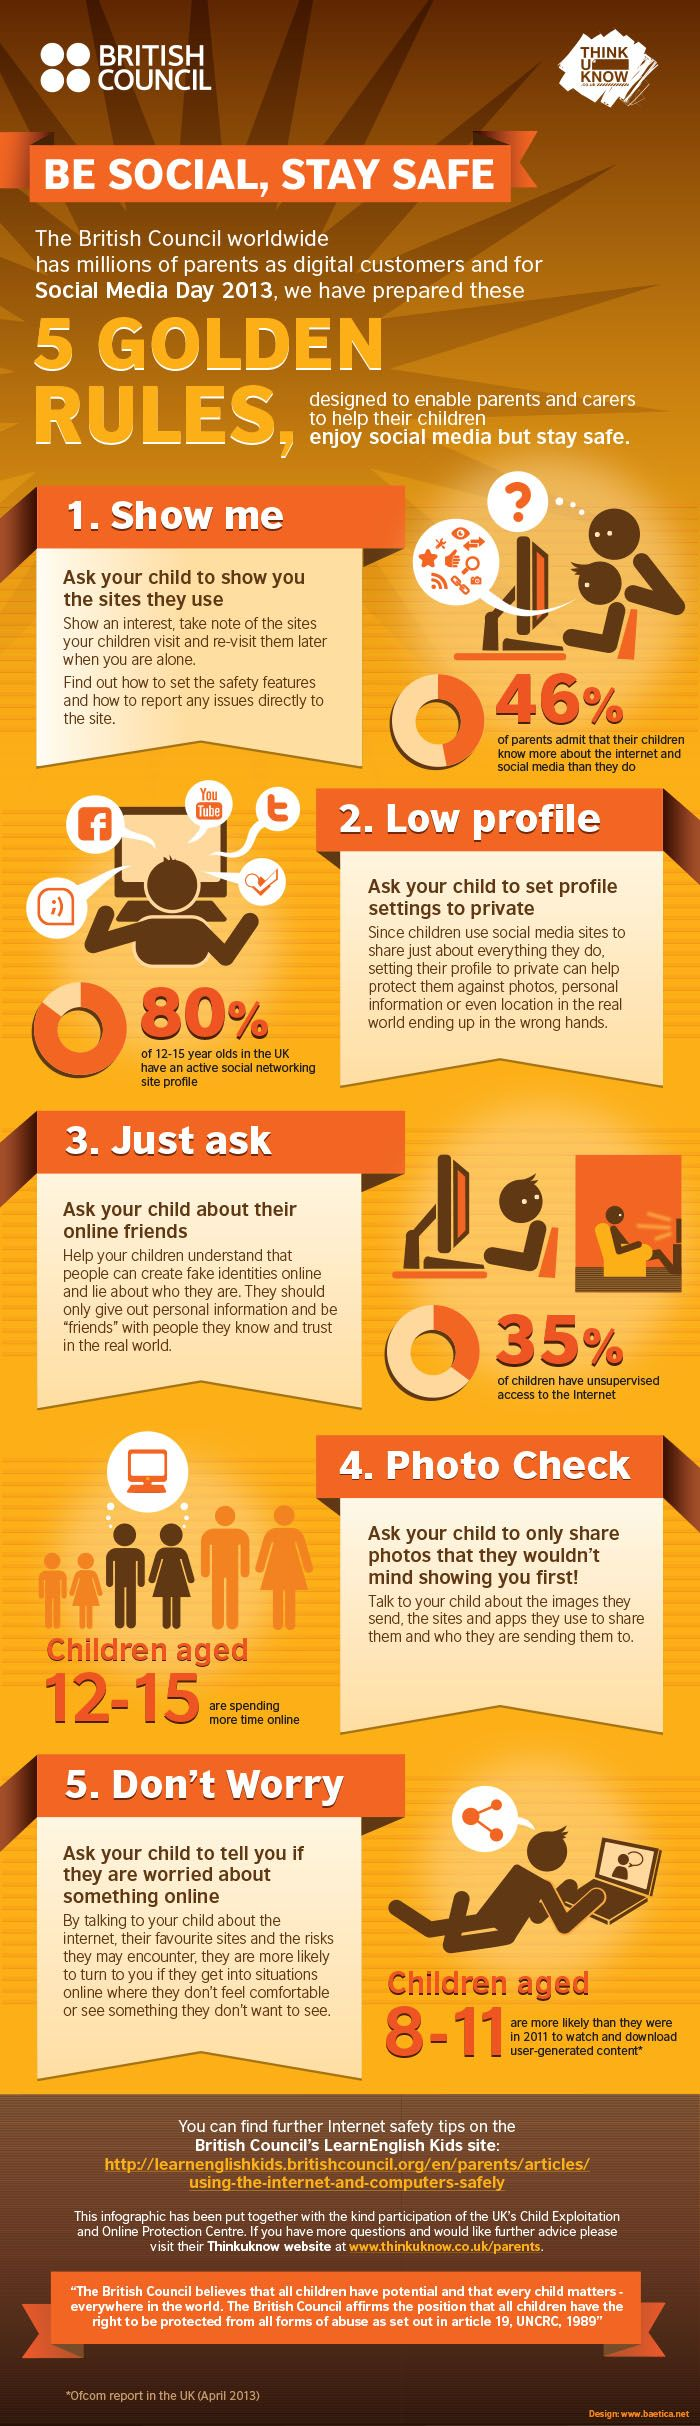 The-Five-Golden-Rules-for-Childrens-Online-Safety-Infographic